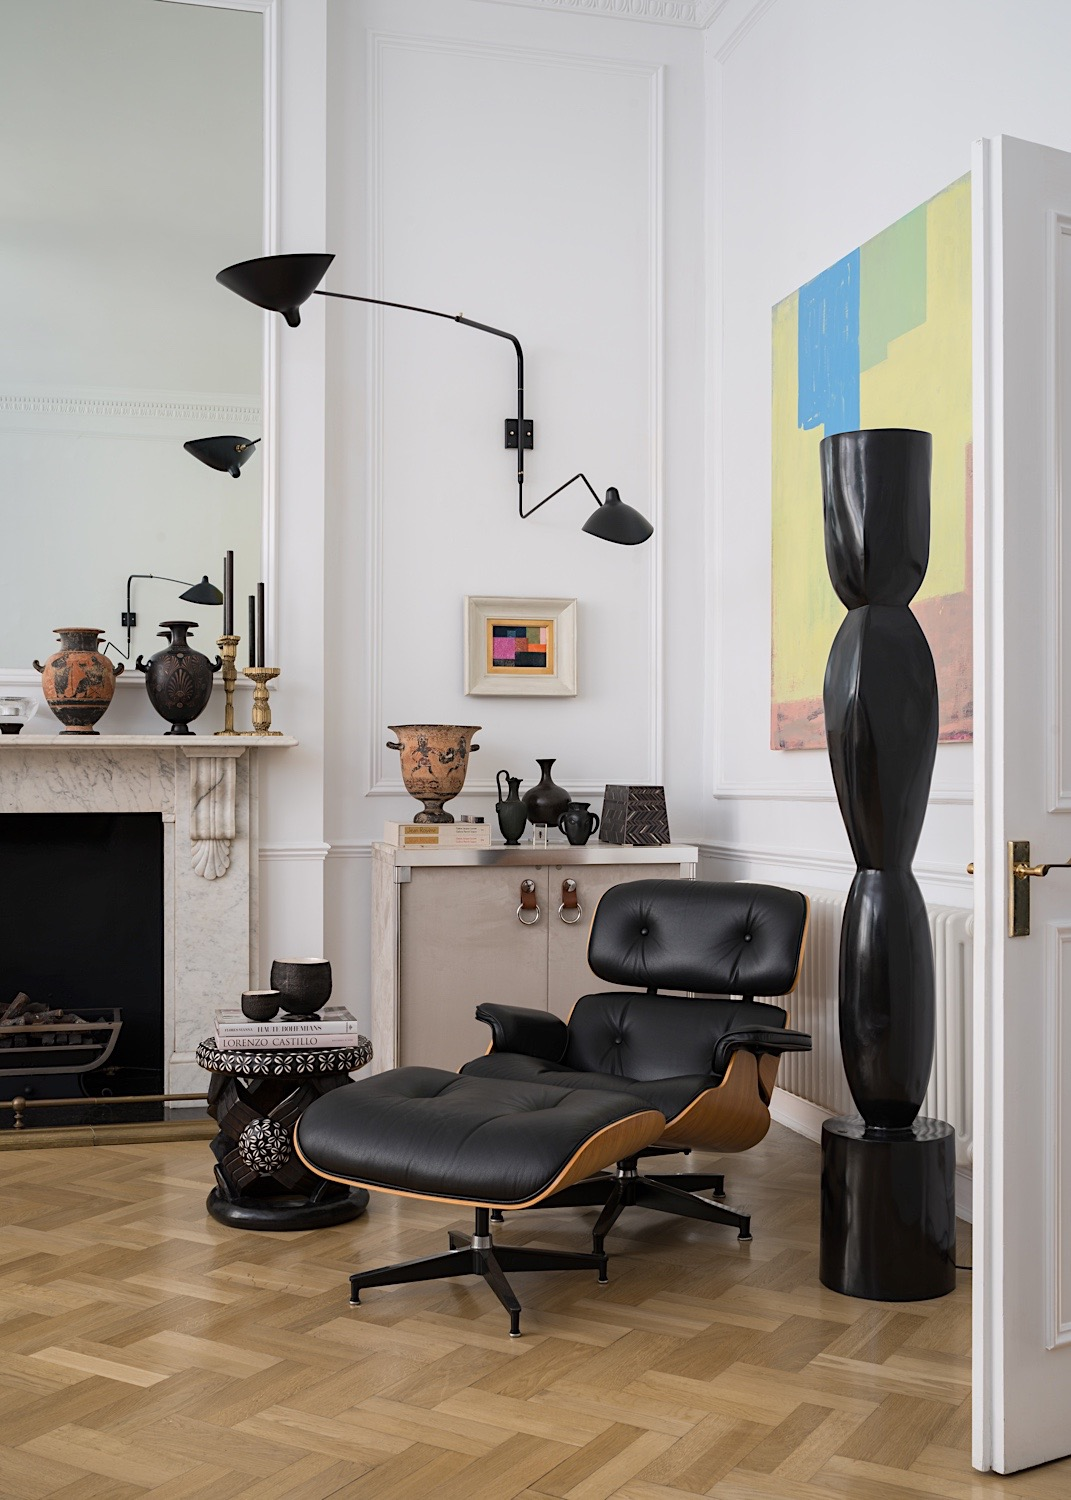 Eames chair & ottoman, Tribal stool, Serge Mouille wall light, bronze torchere by Alexander Lamont. Painting by Joseph Goody.